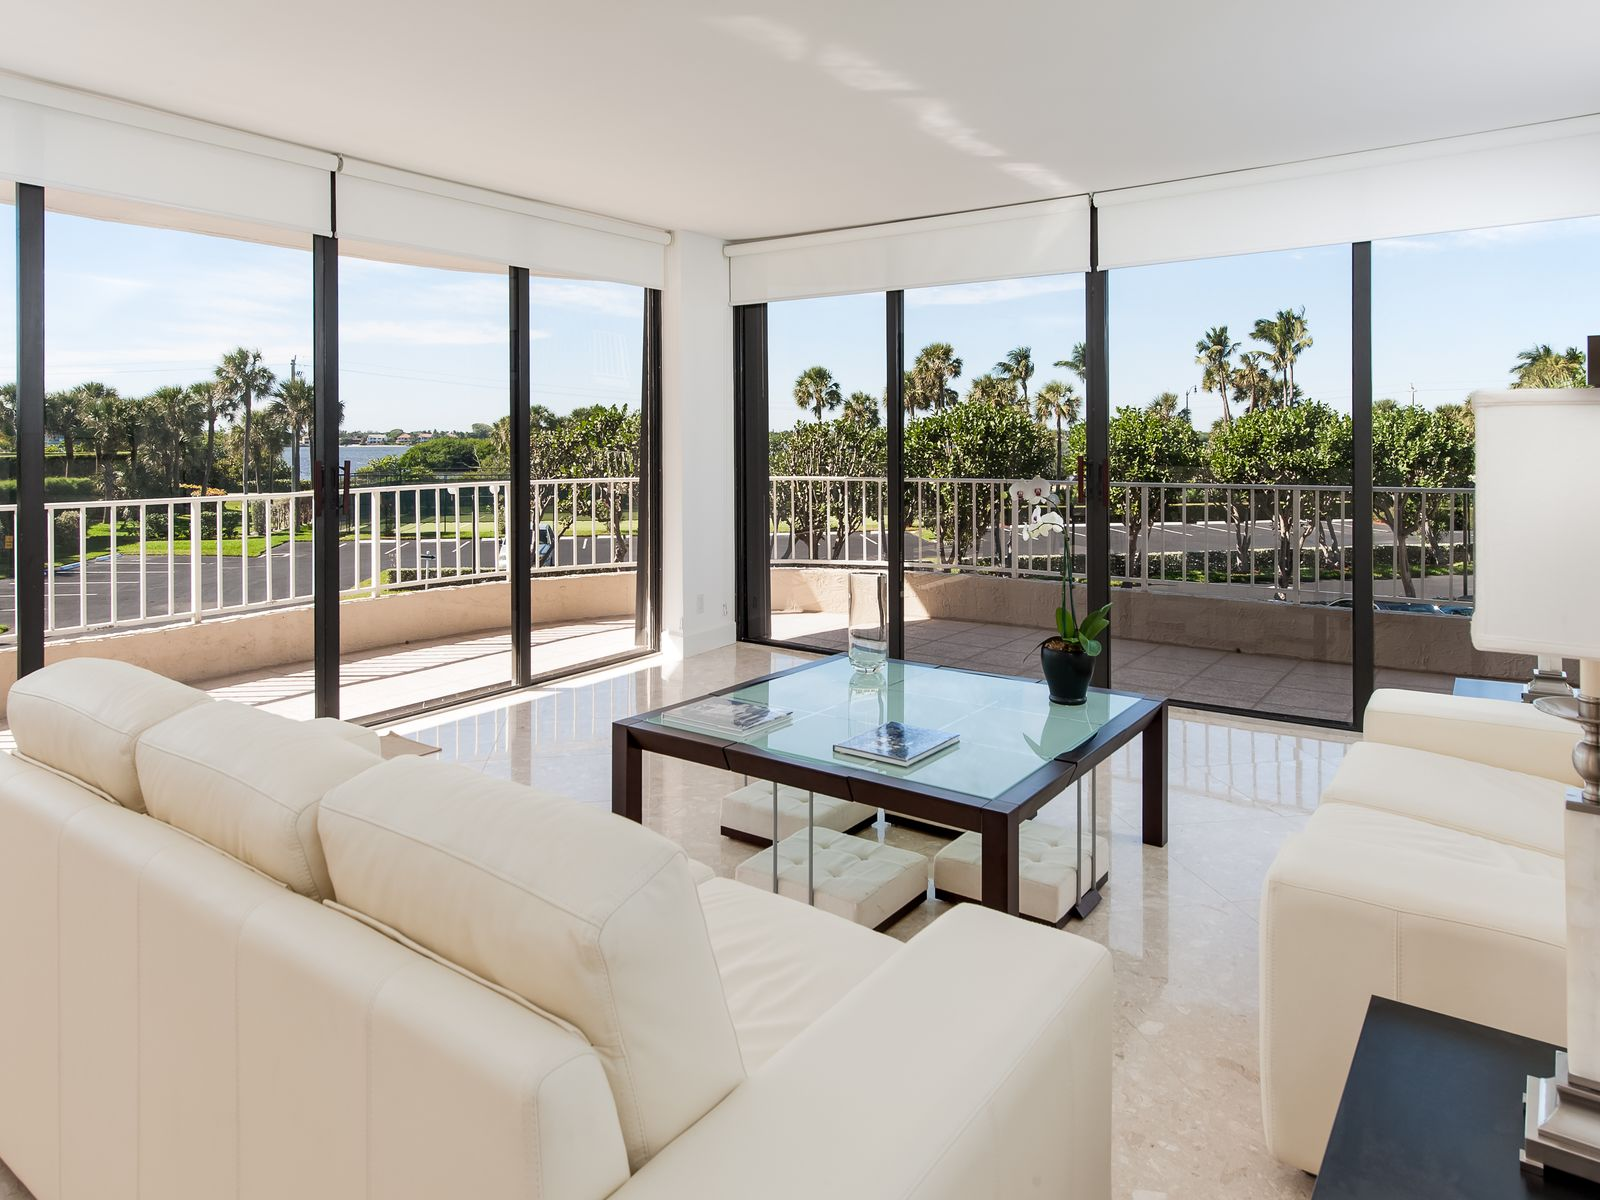 The Atriums - Palm Beach Ocean Front , Palm Beach FL Condominium - Palm Beach Real Estate